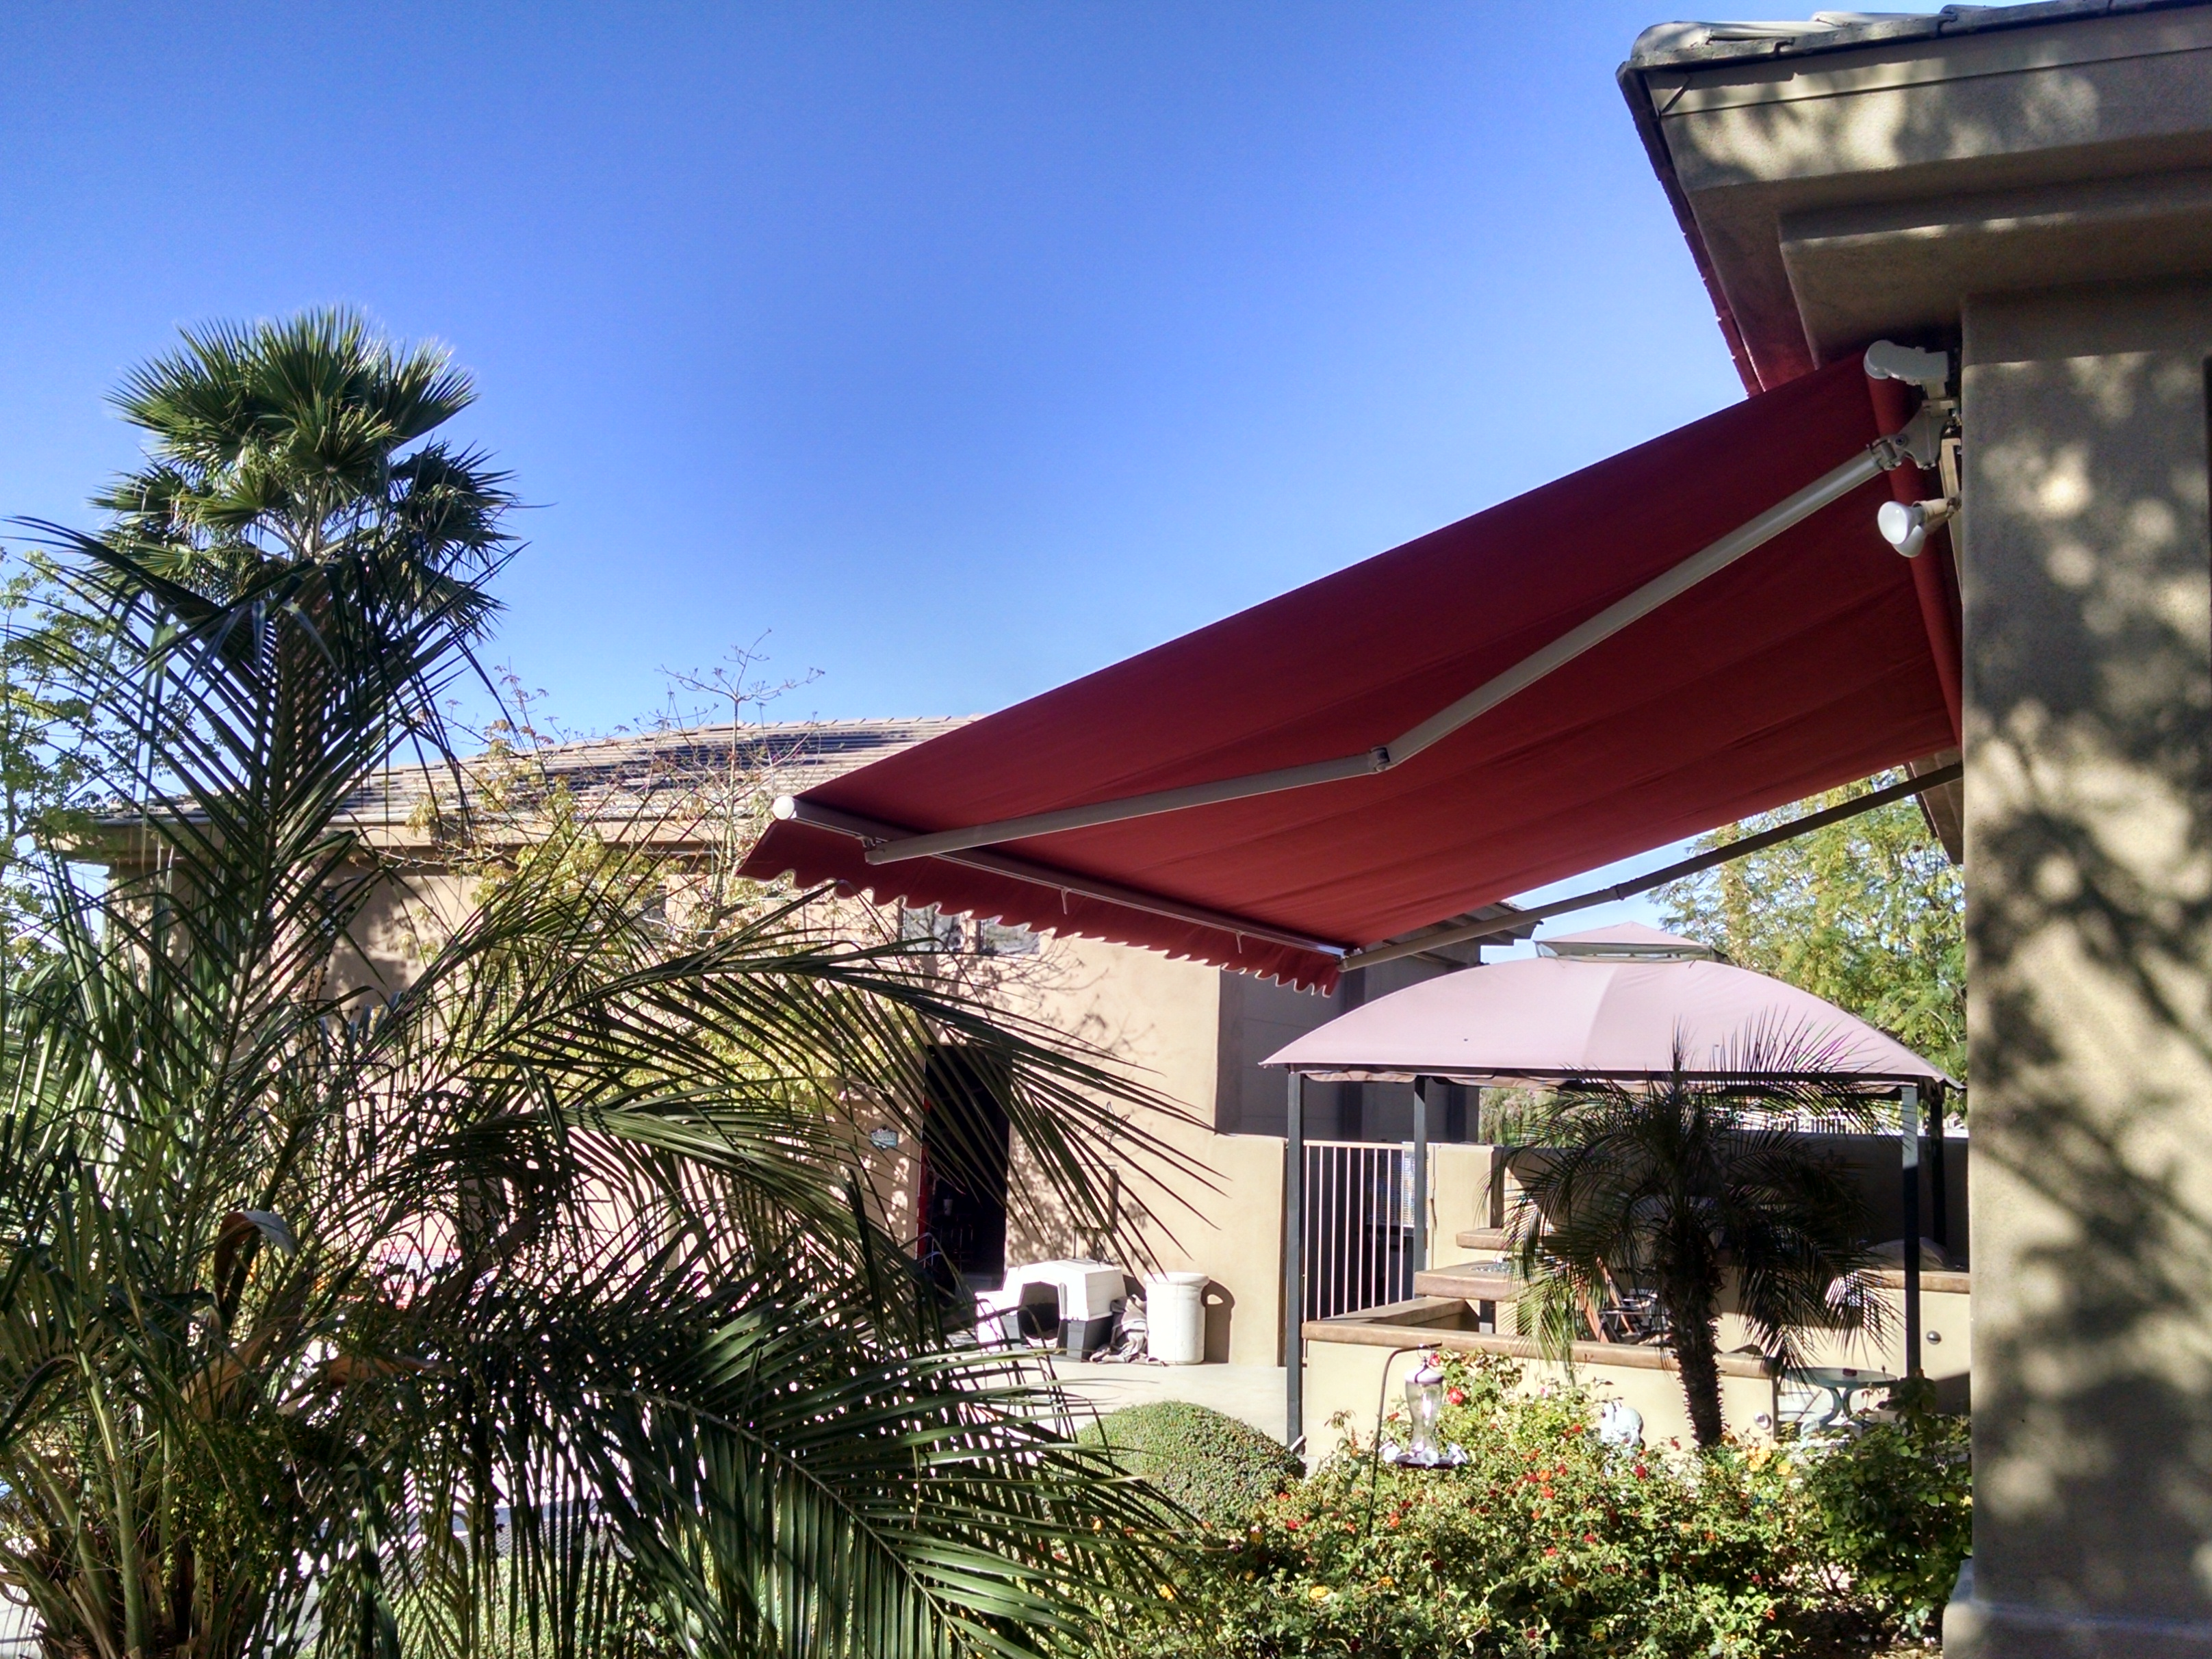 Awning Cleaning Service Jumbrella Cleaning Awning Cleaning